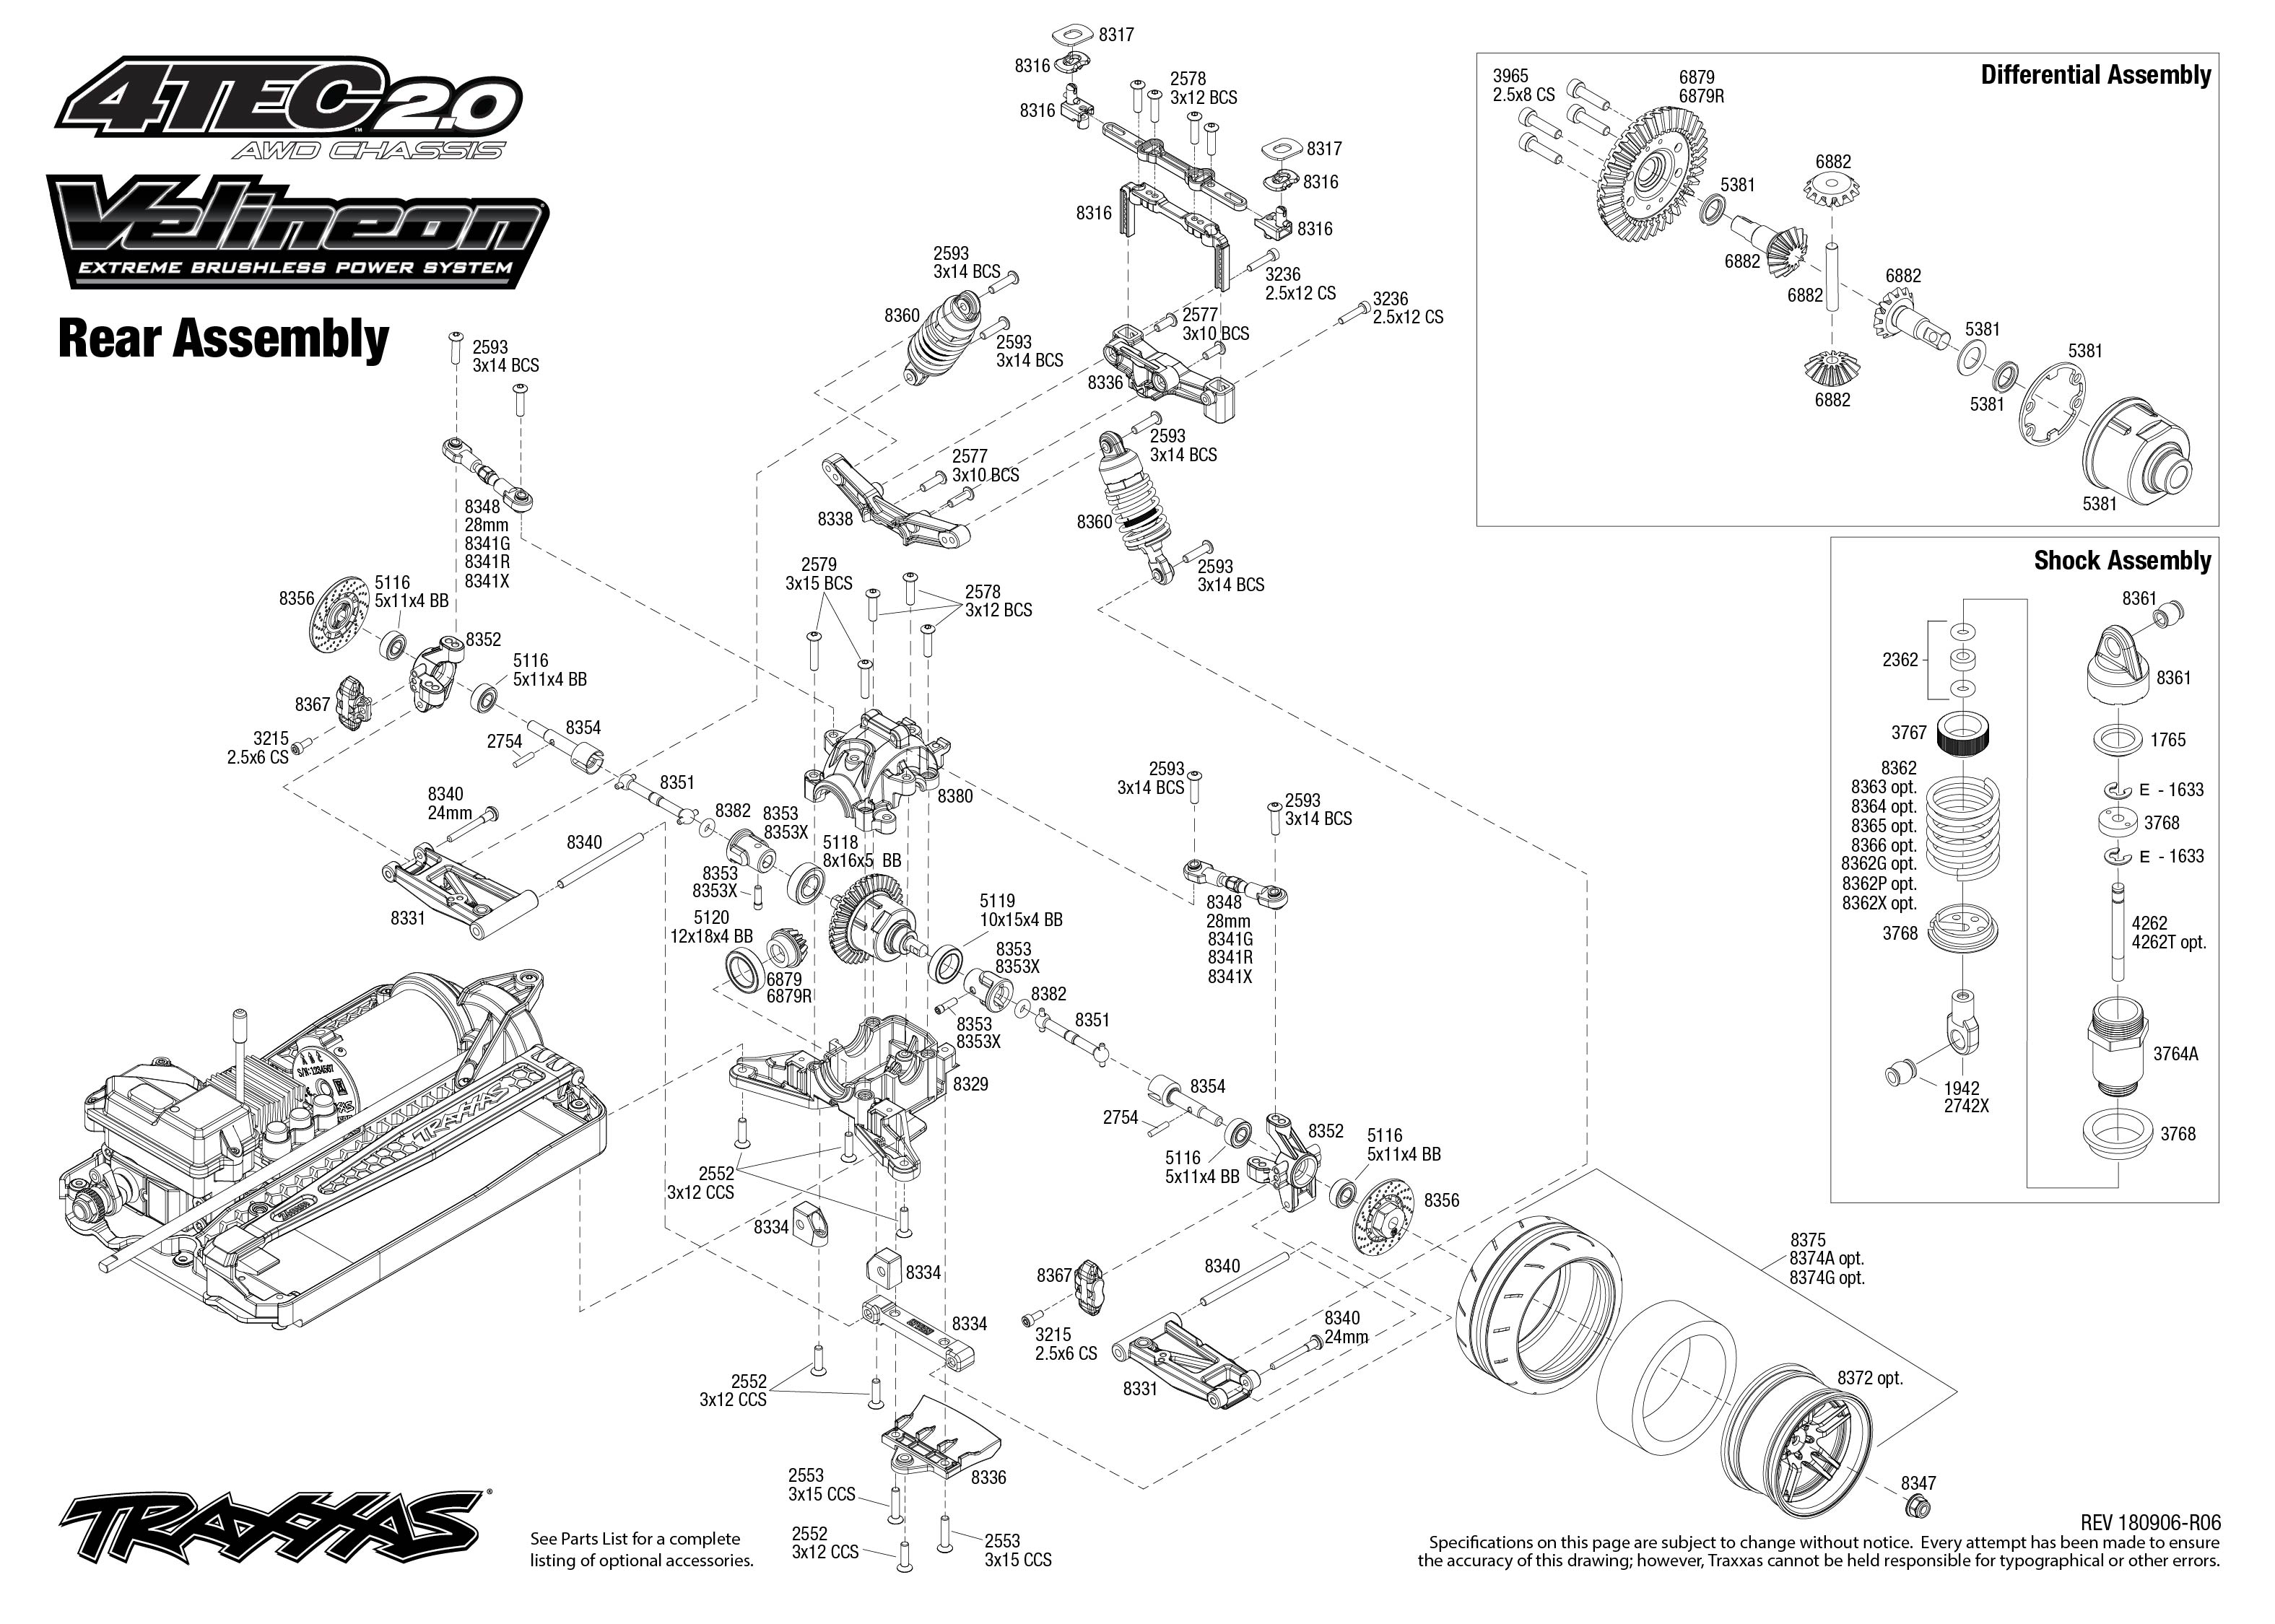 4 Tec 2 0 Vxl 4 Rear Assembly Exploded View